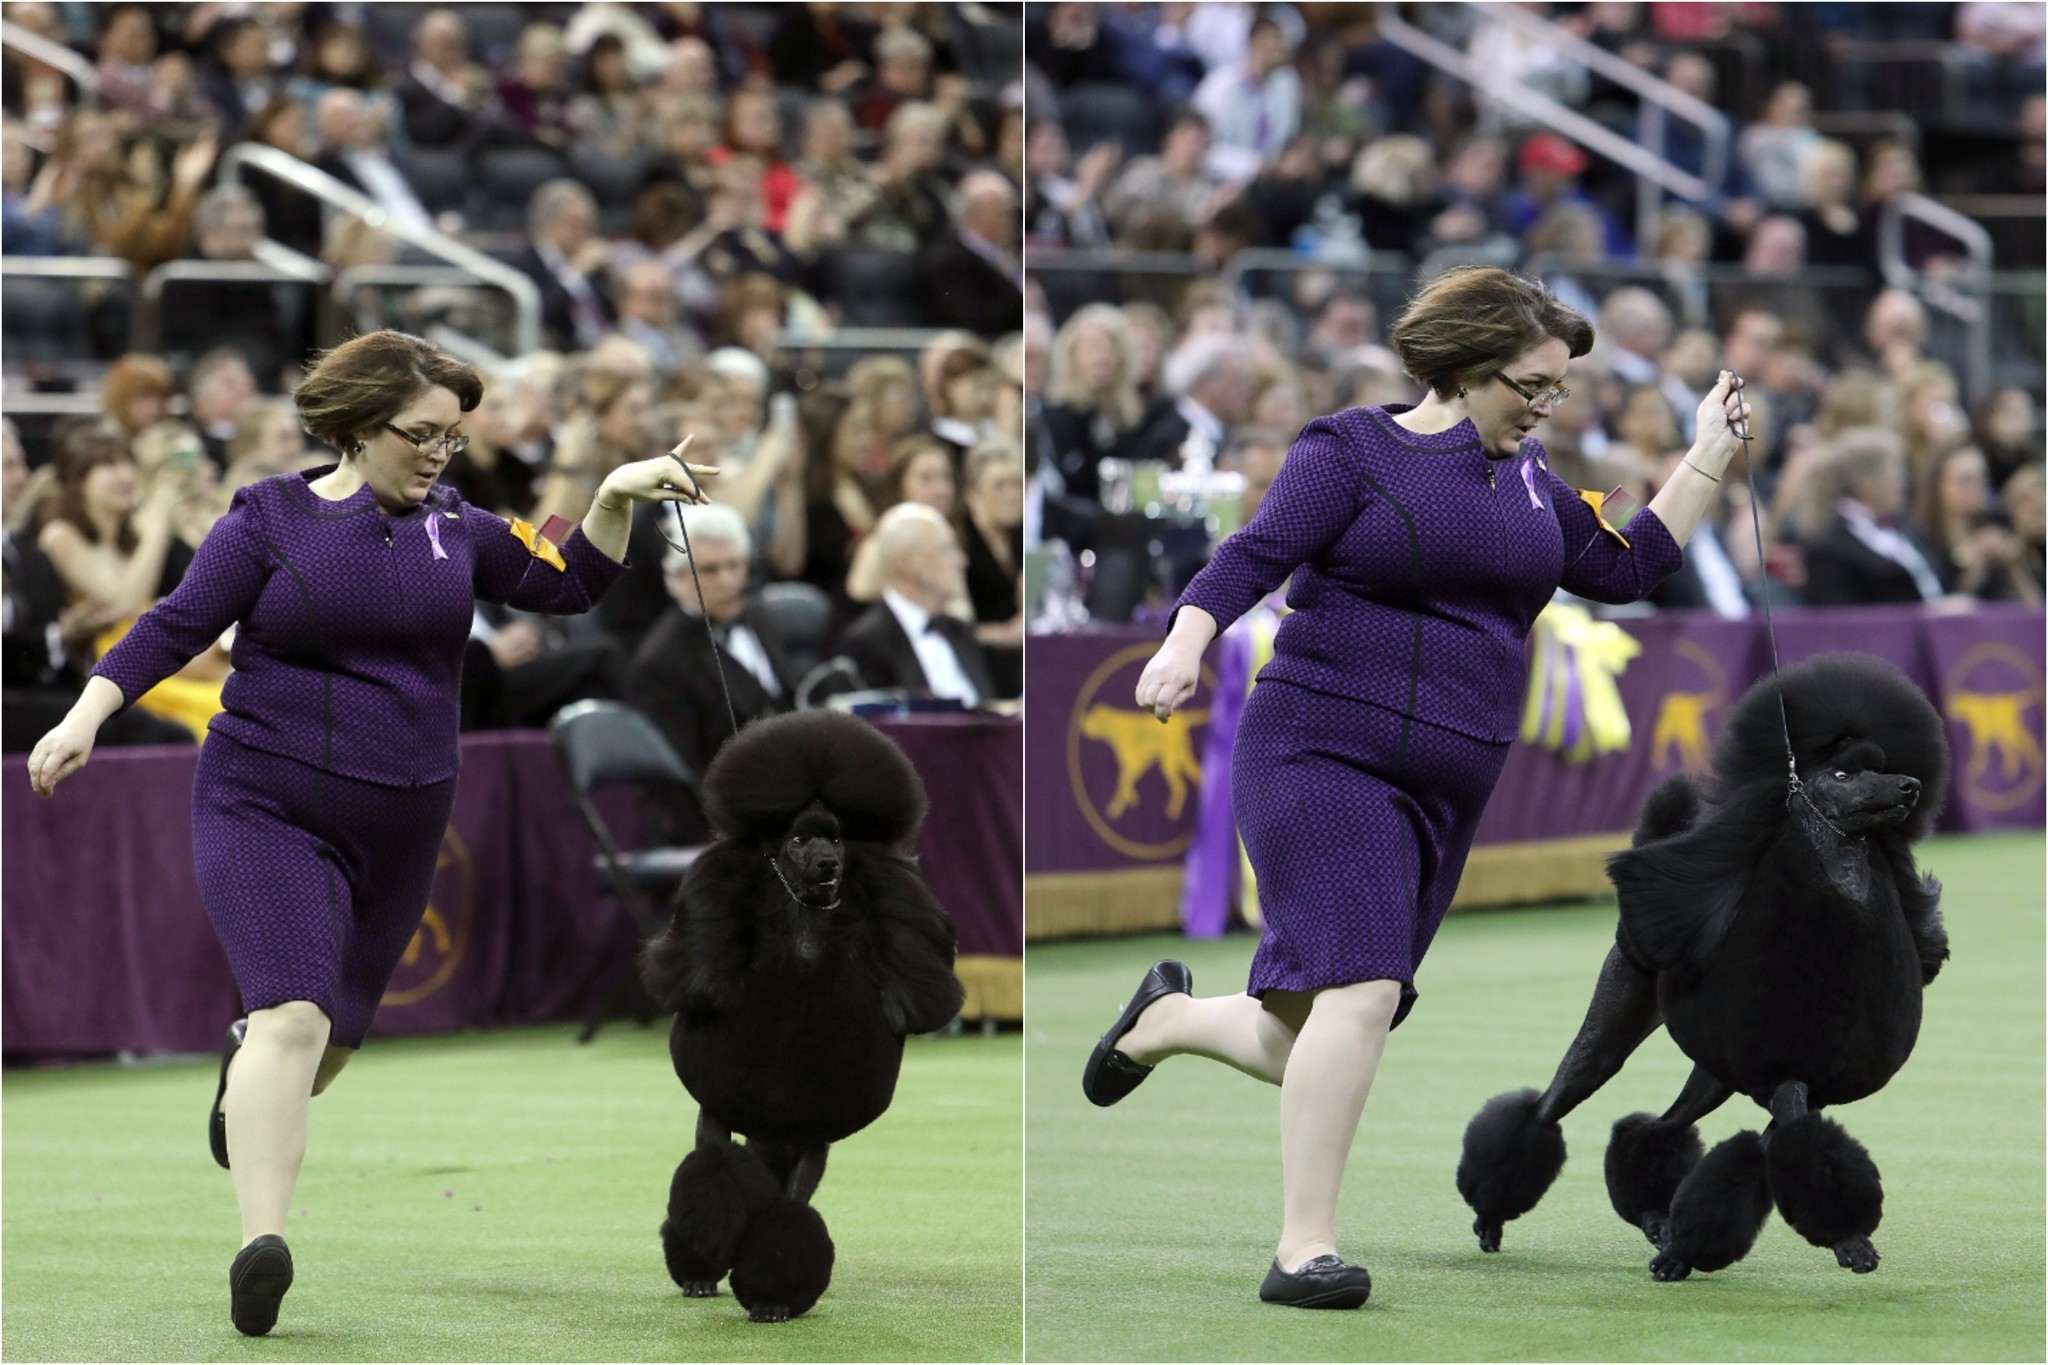 Siba the Poodle wins best in show at Westminster